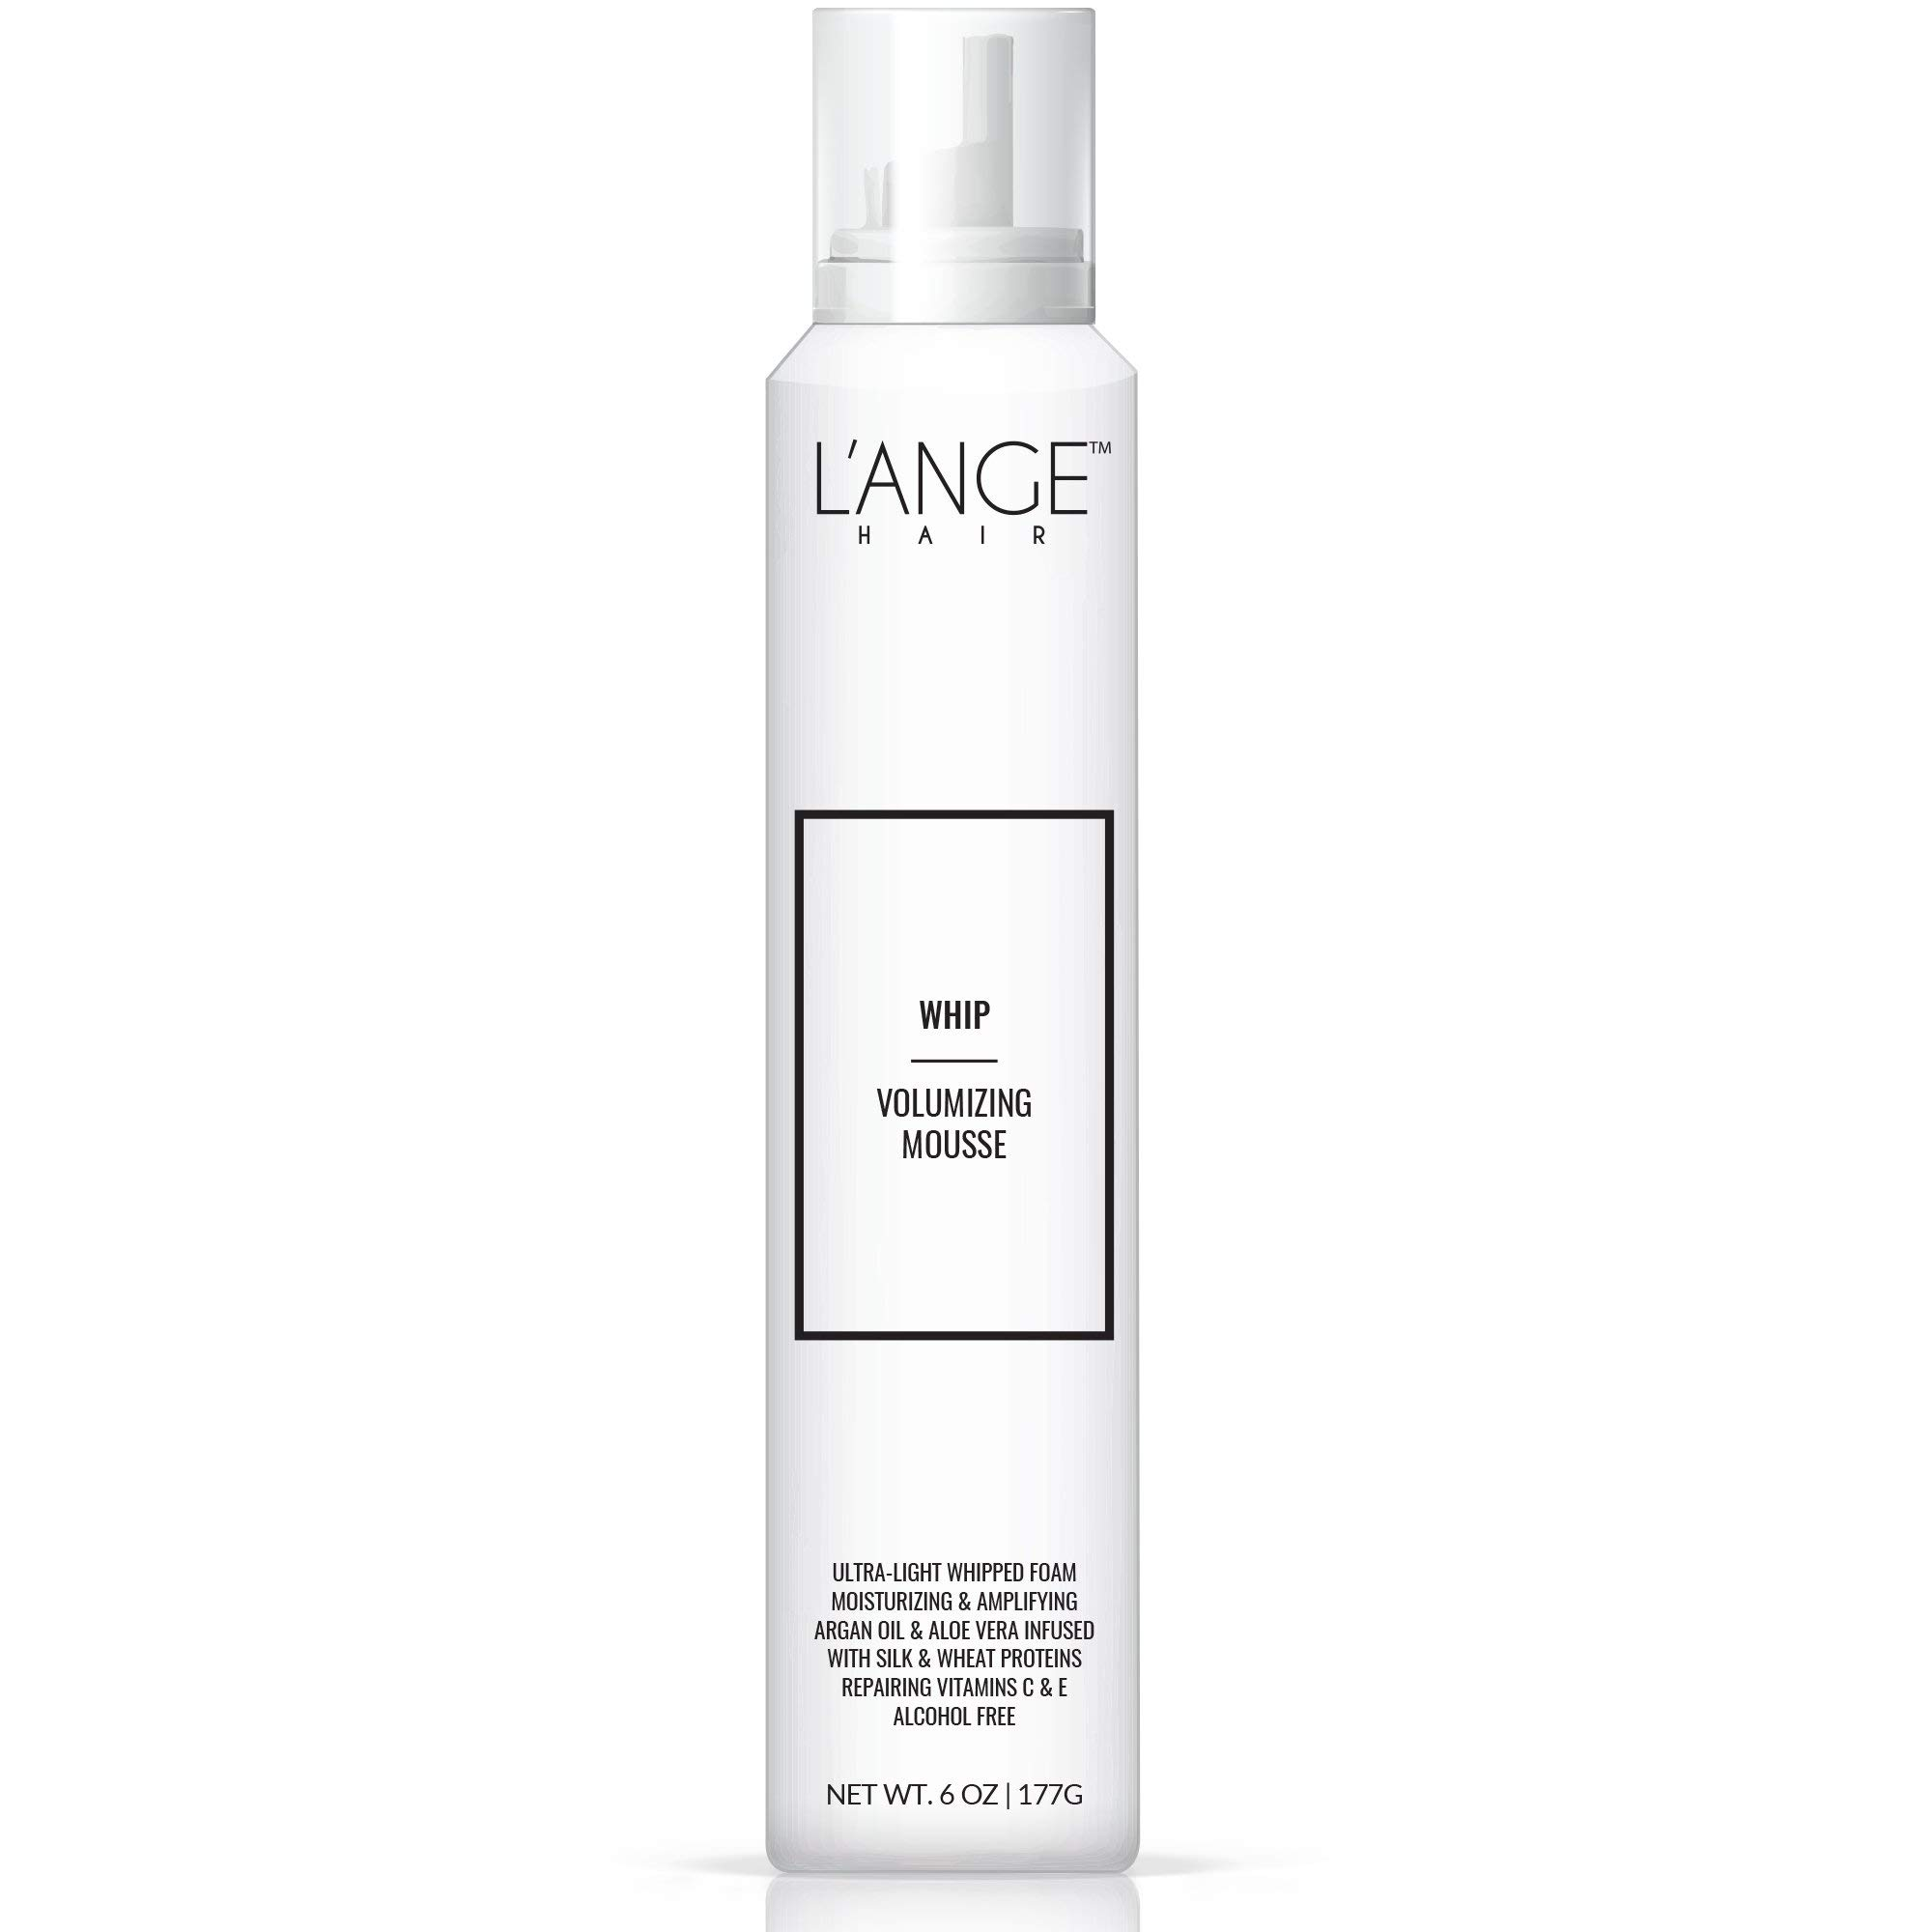 L'ange Hair WHIP Volumizing Mousse - Big Volume Natural Hair Thickening Foam Mousse for Women, Men, Girls with Argan Oil & Aloe Vera, Professional Texture Hair Styling Foaming Mousse - 6 Oz, MSRP $30 by L'ANGE HAIR